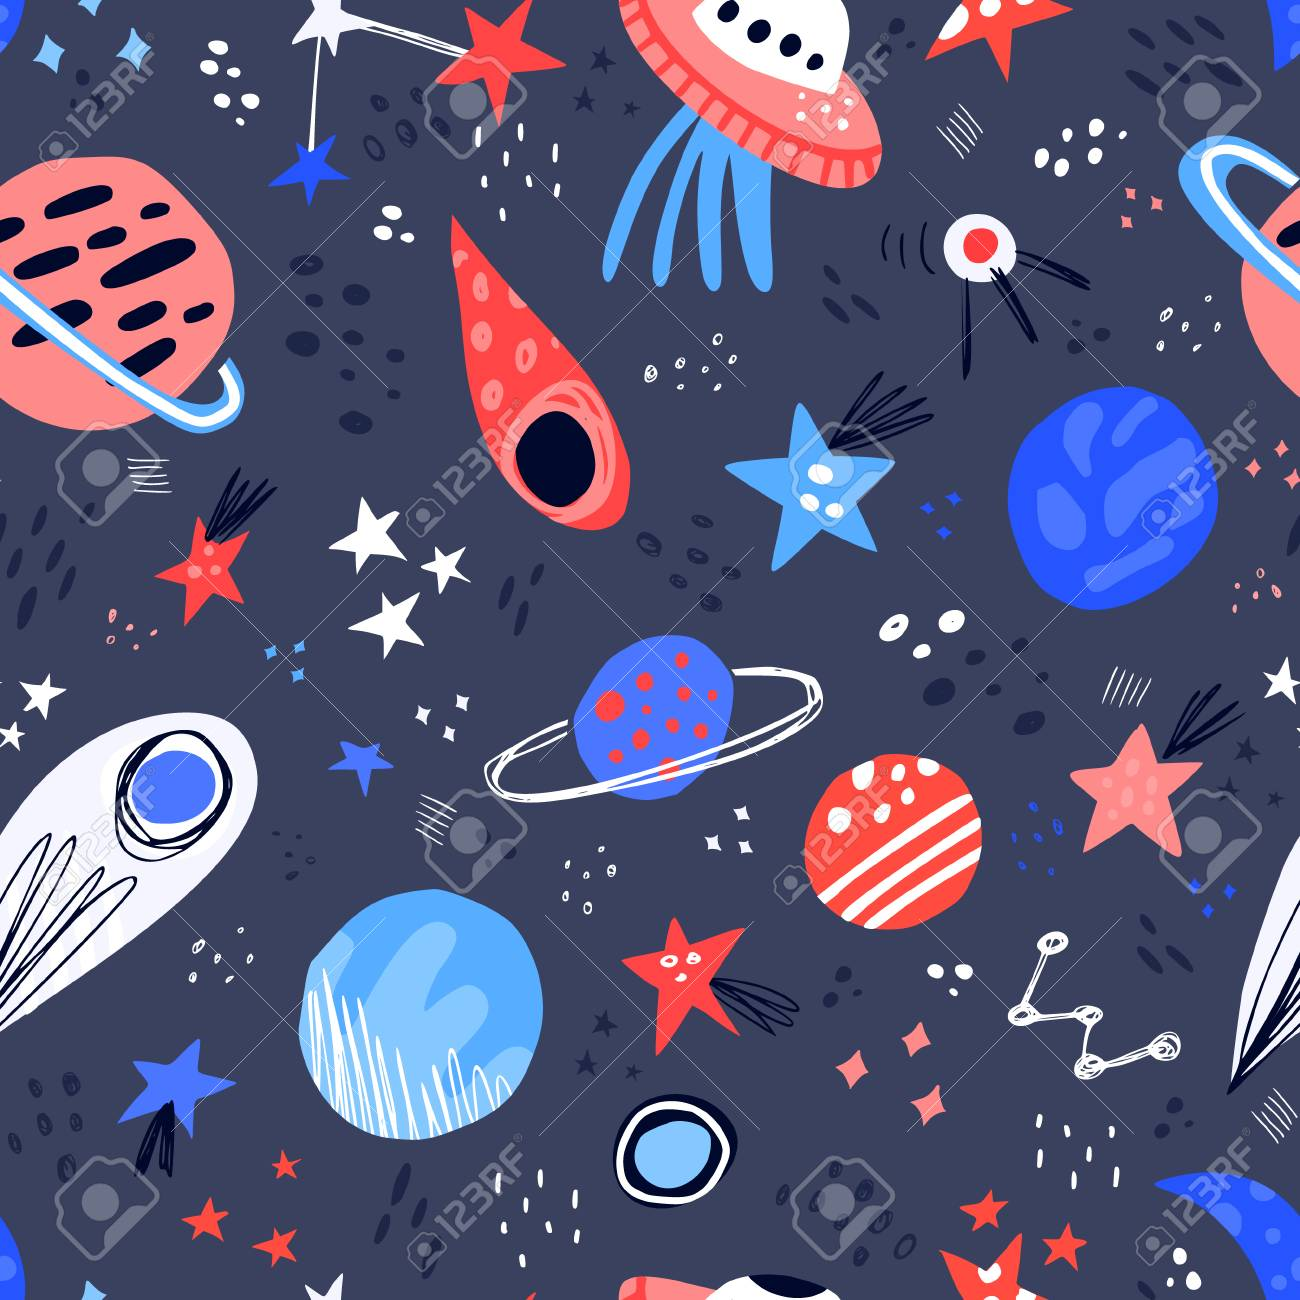 Space hand drawn color vector seamless pattern. Cartoon texture with planets, stars, ufo, comet. Space galaxy scandinavian illustration. Sketch universe. Web, wrapping paper, background doodle fill - 113772997